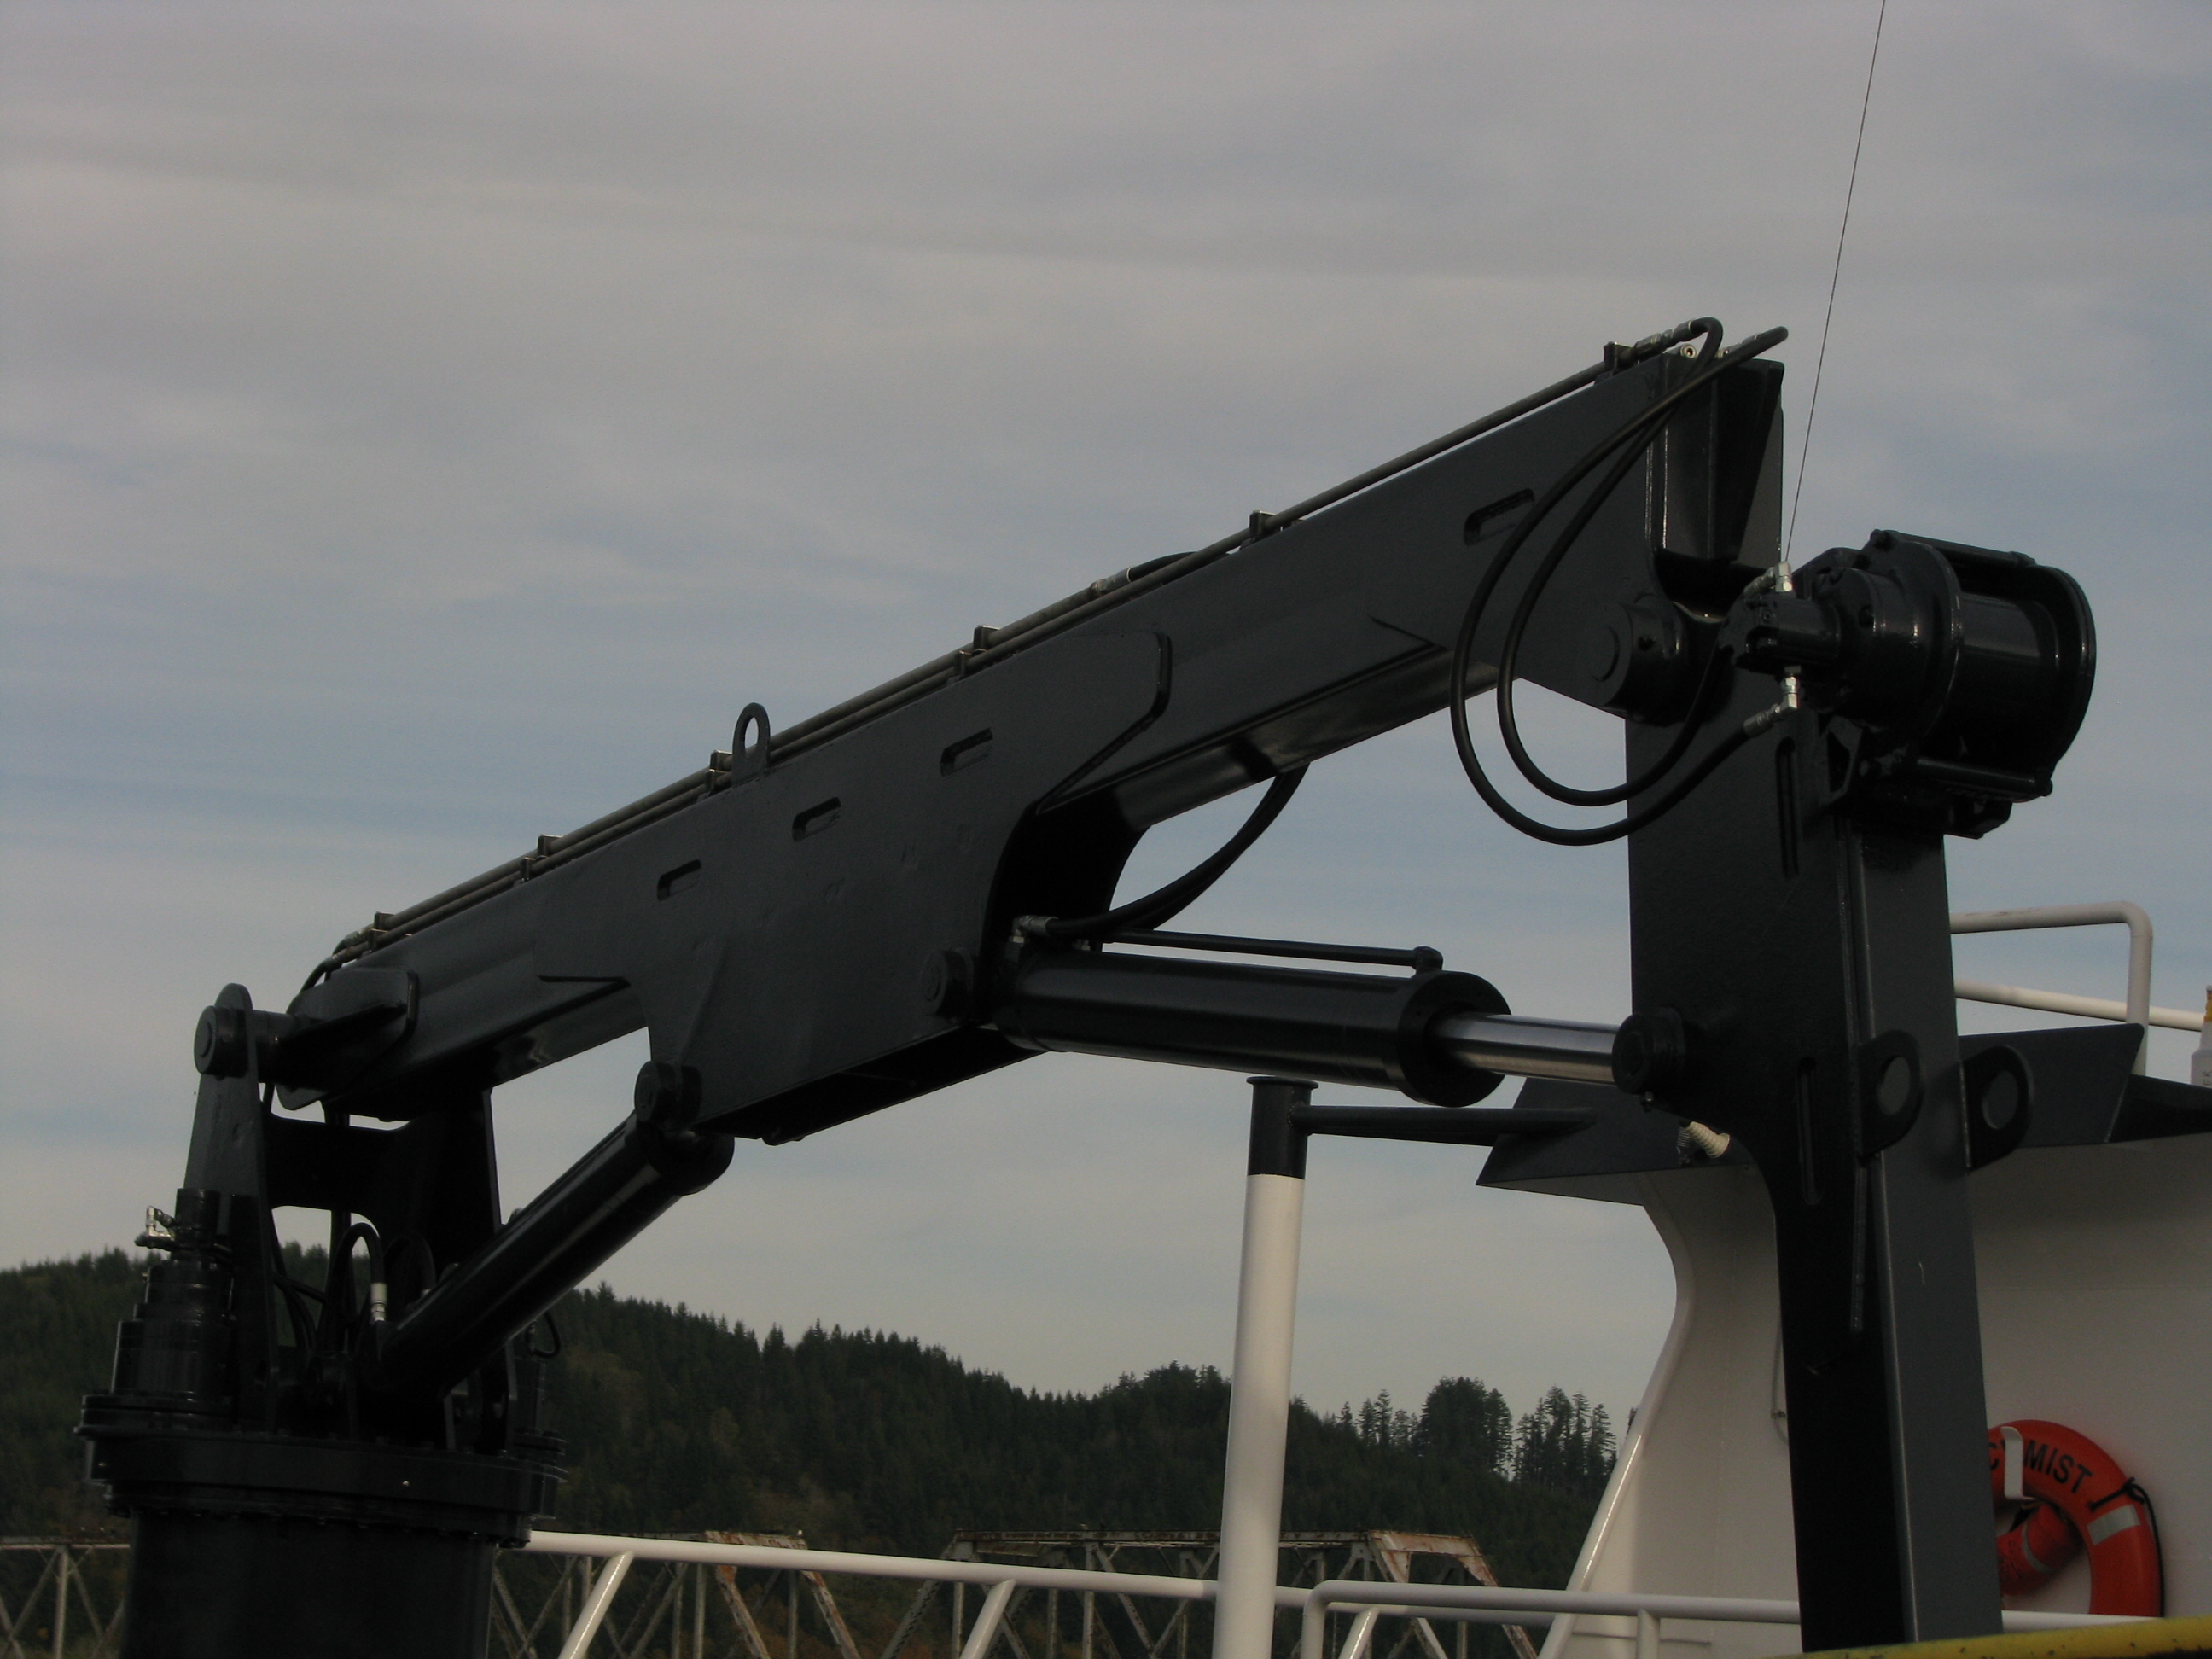 30-FOOT KNUCKLE CRANE | DECK CRANE